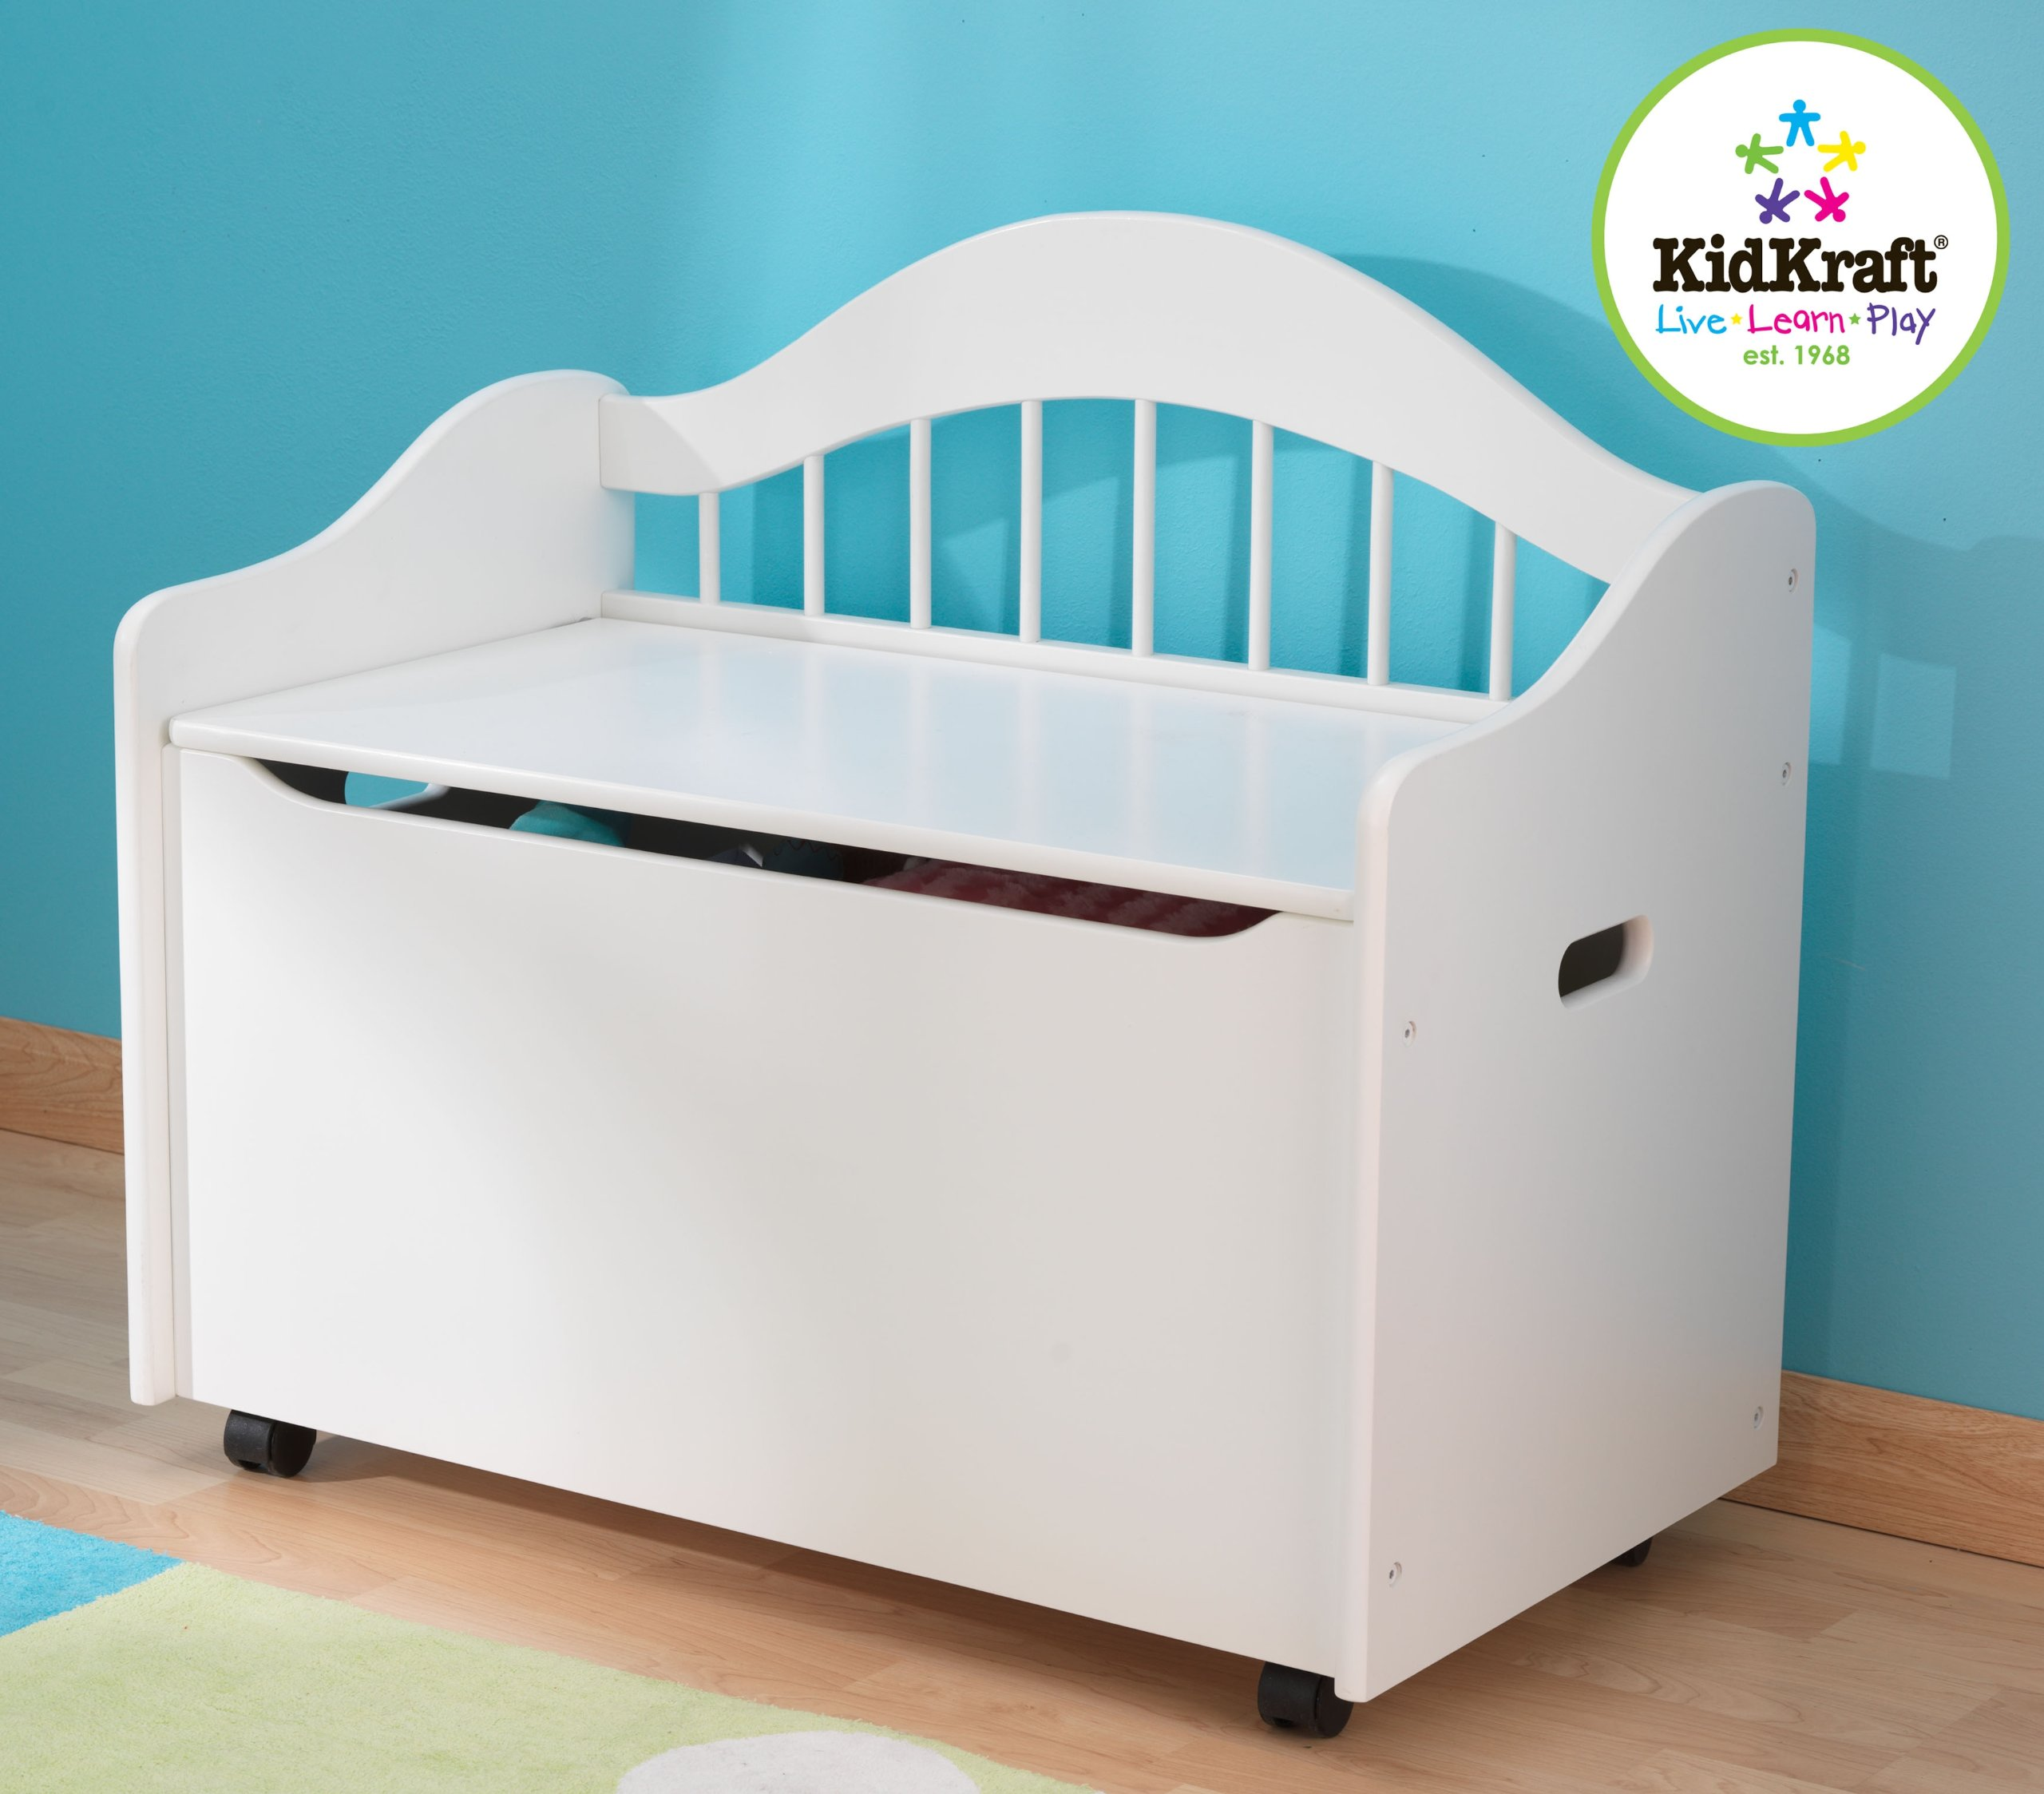 KidKraft® Limited Edition Toy Chest, WHITE